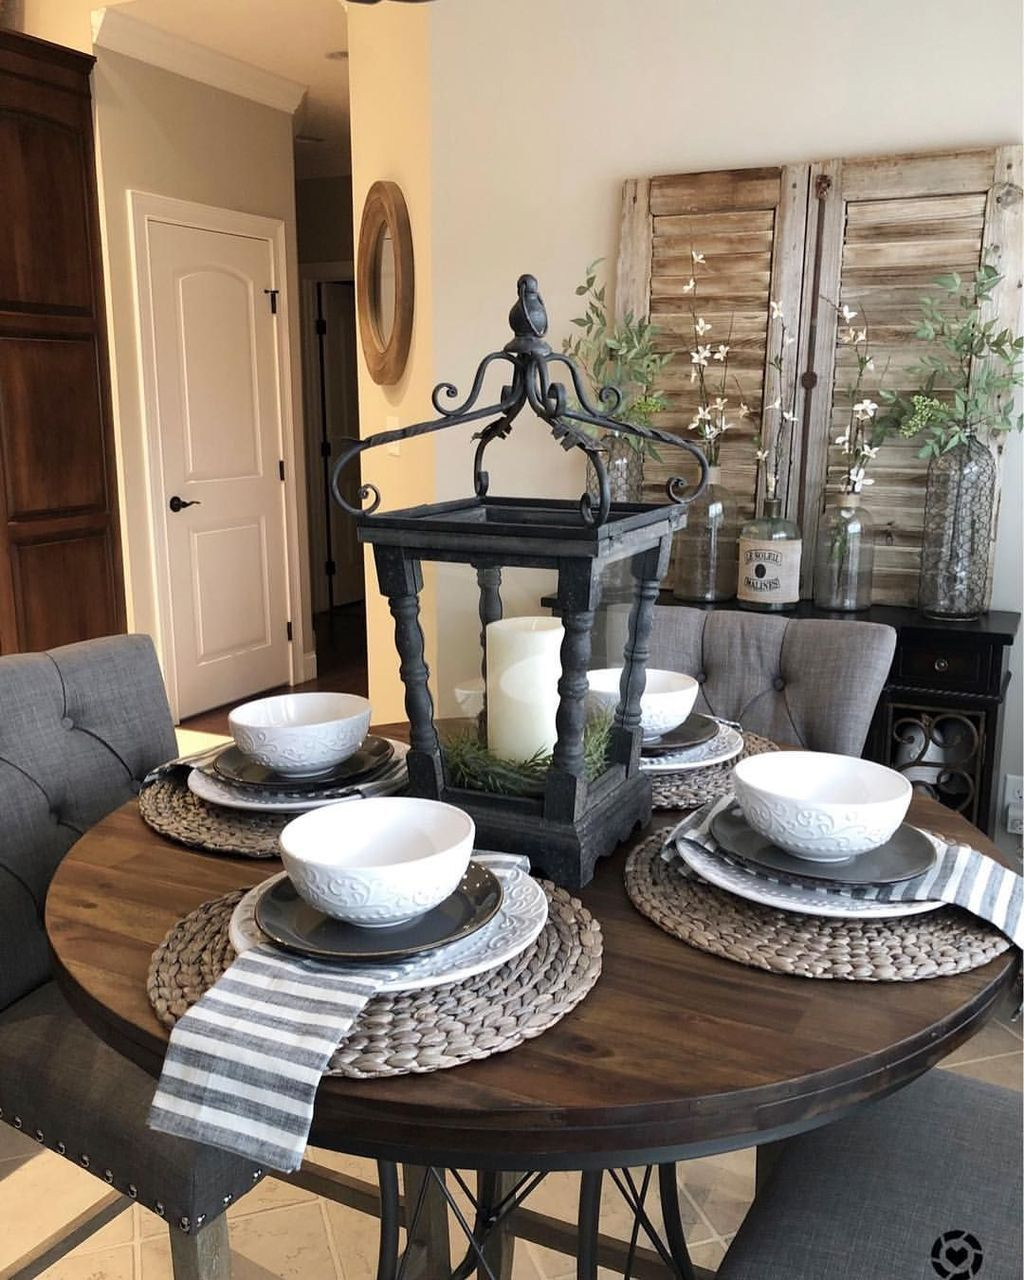 40 Awesome Dining Room Table Decor Ideas images